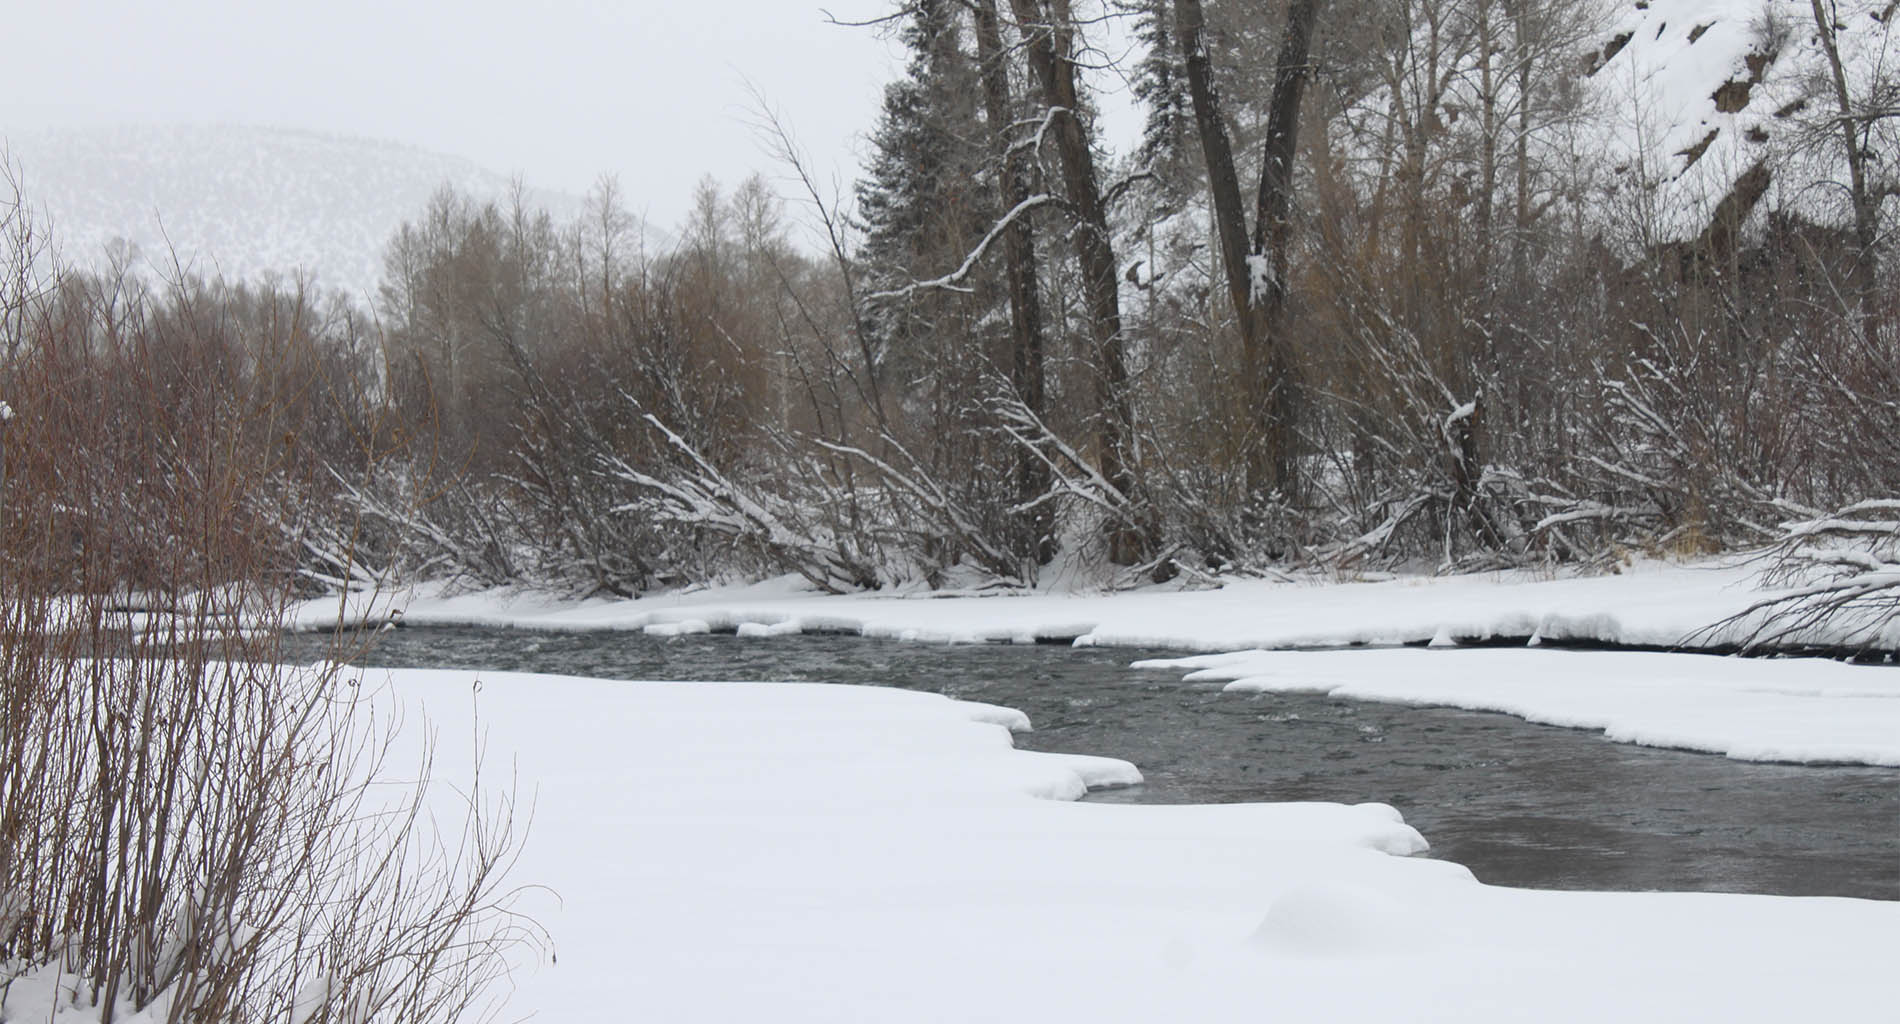 in a wintery scene in colorado a river flows through the chilly landscape that is blanketed in snow